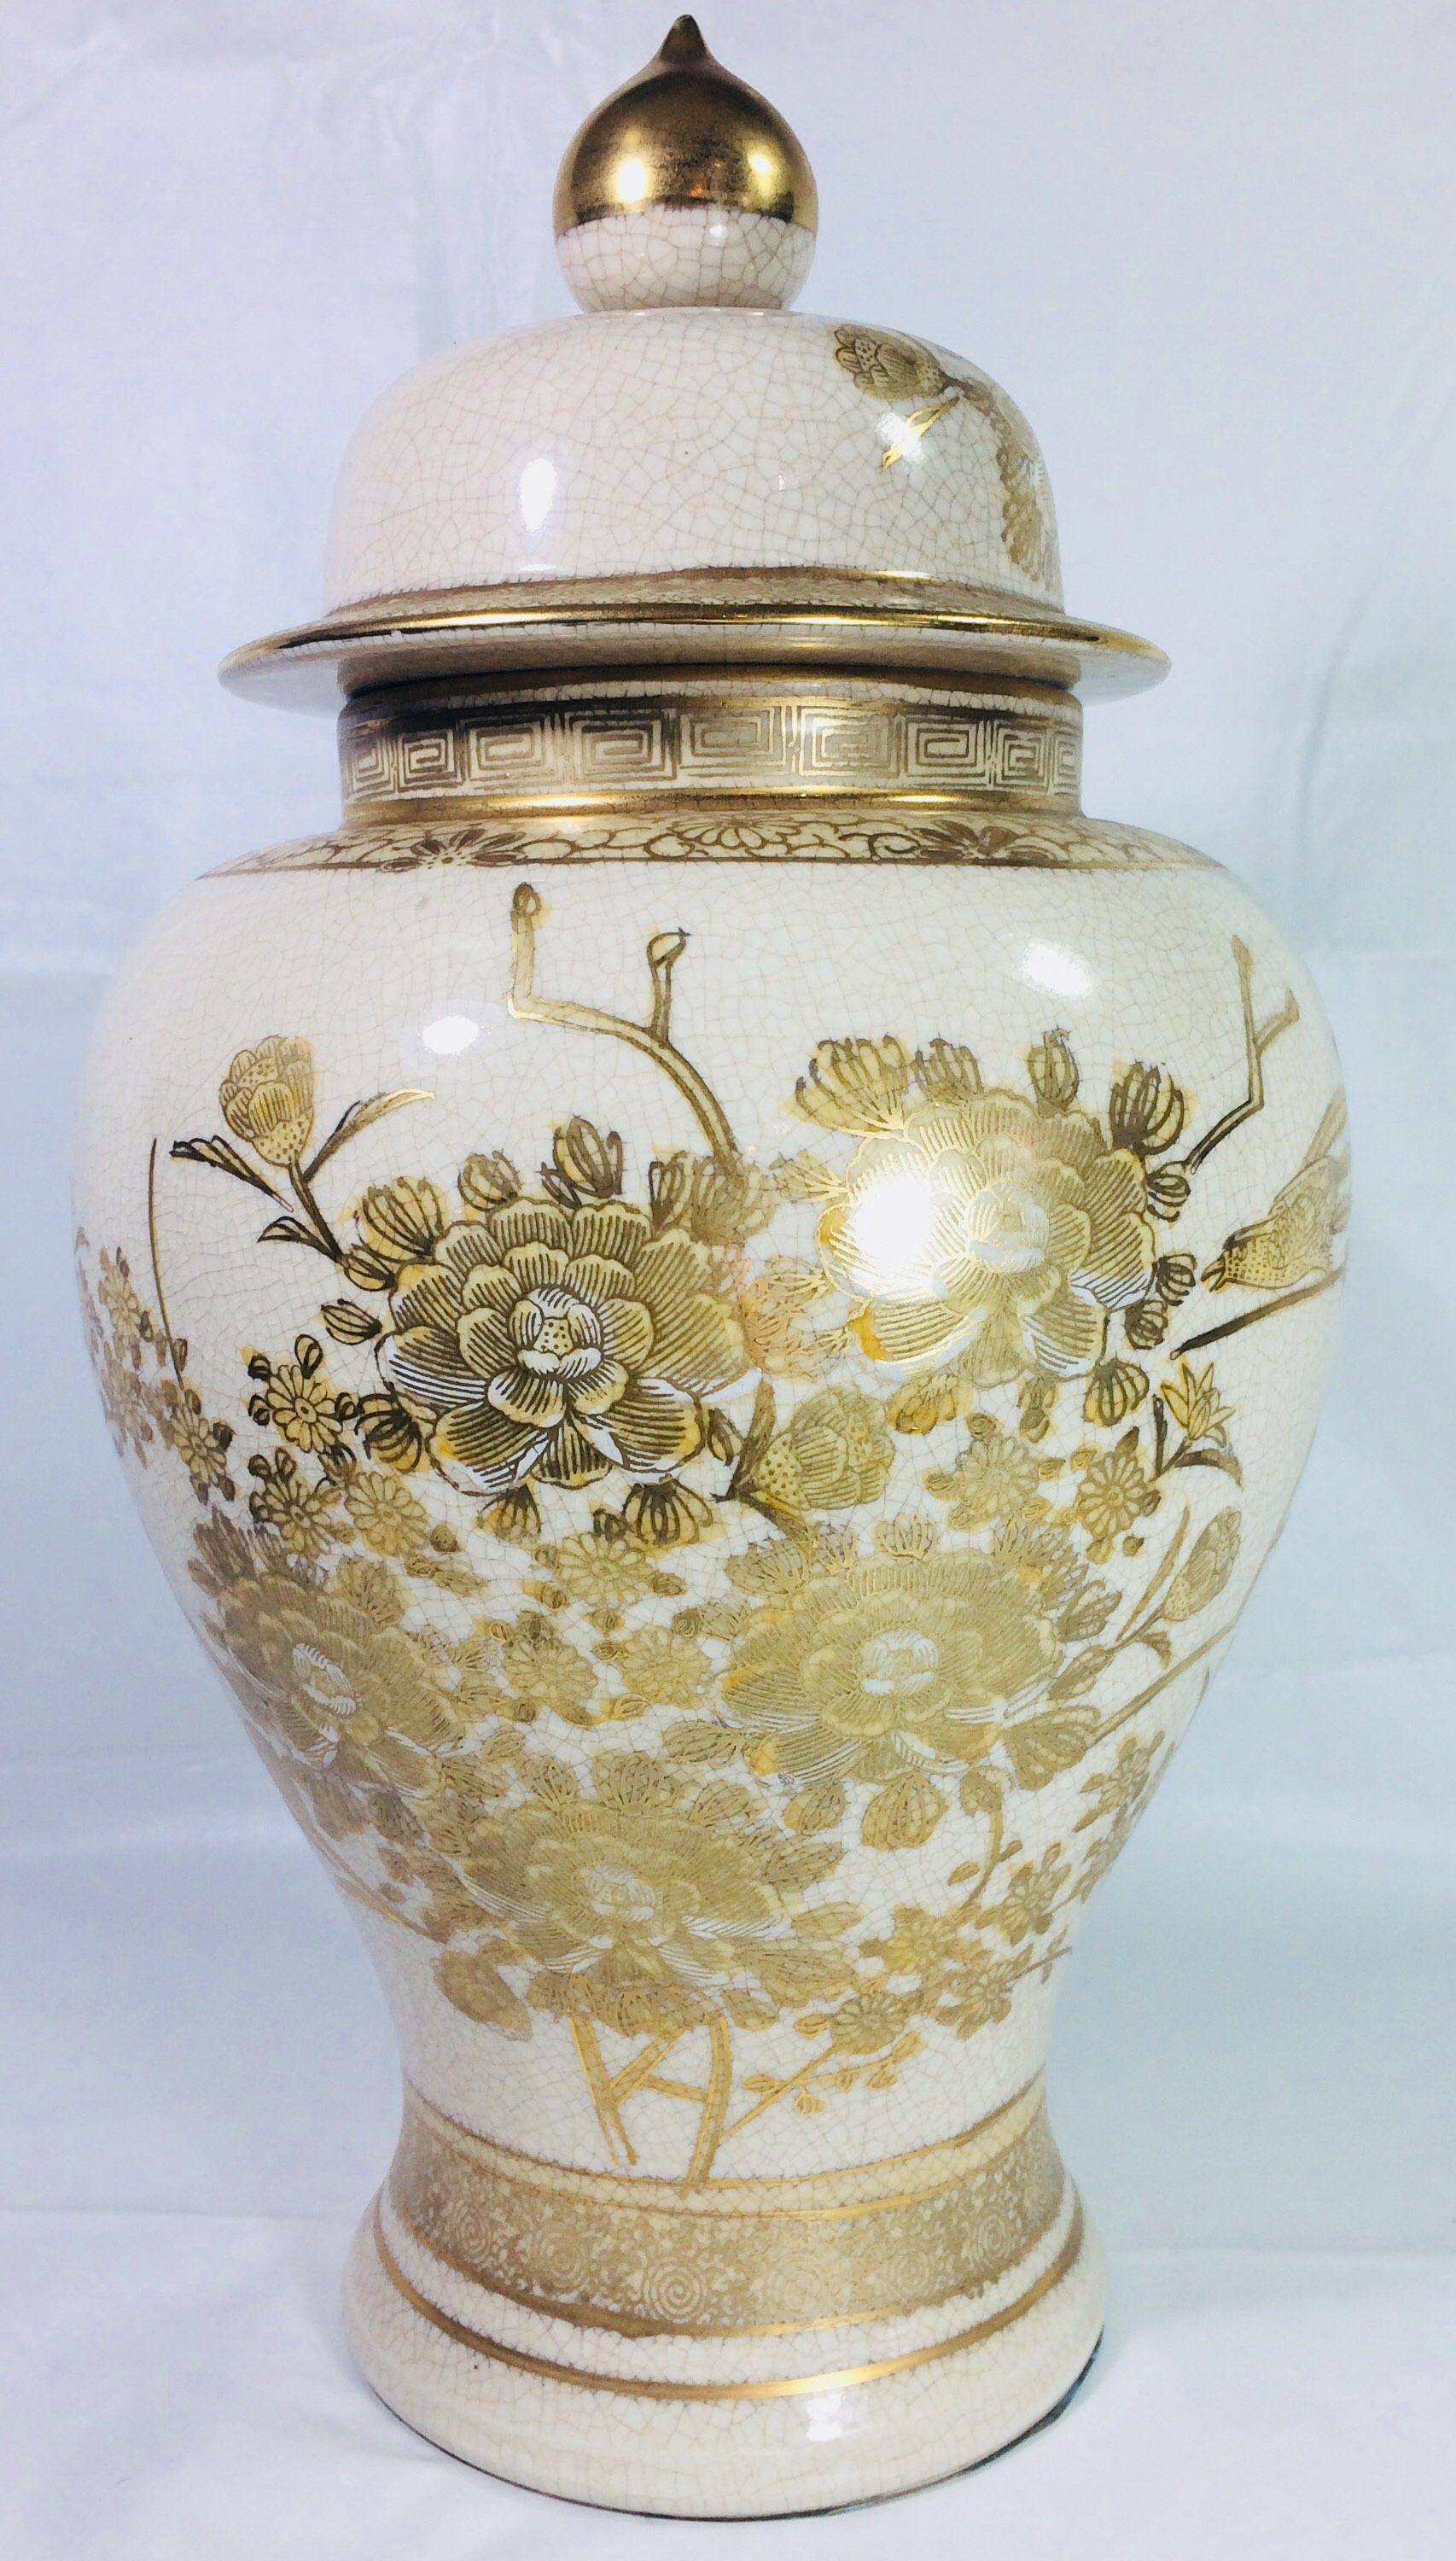 Decorative Urns Vases Oriental Urnvasehand Painted Asianoriental Decorgilded Urn